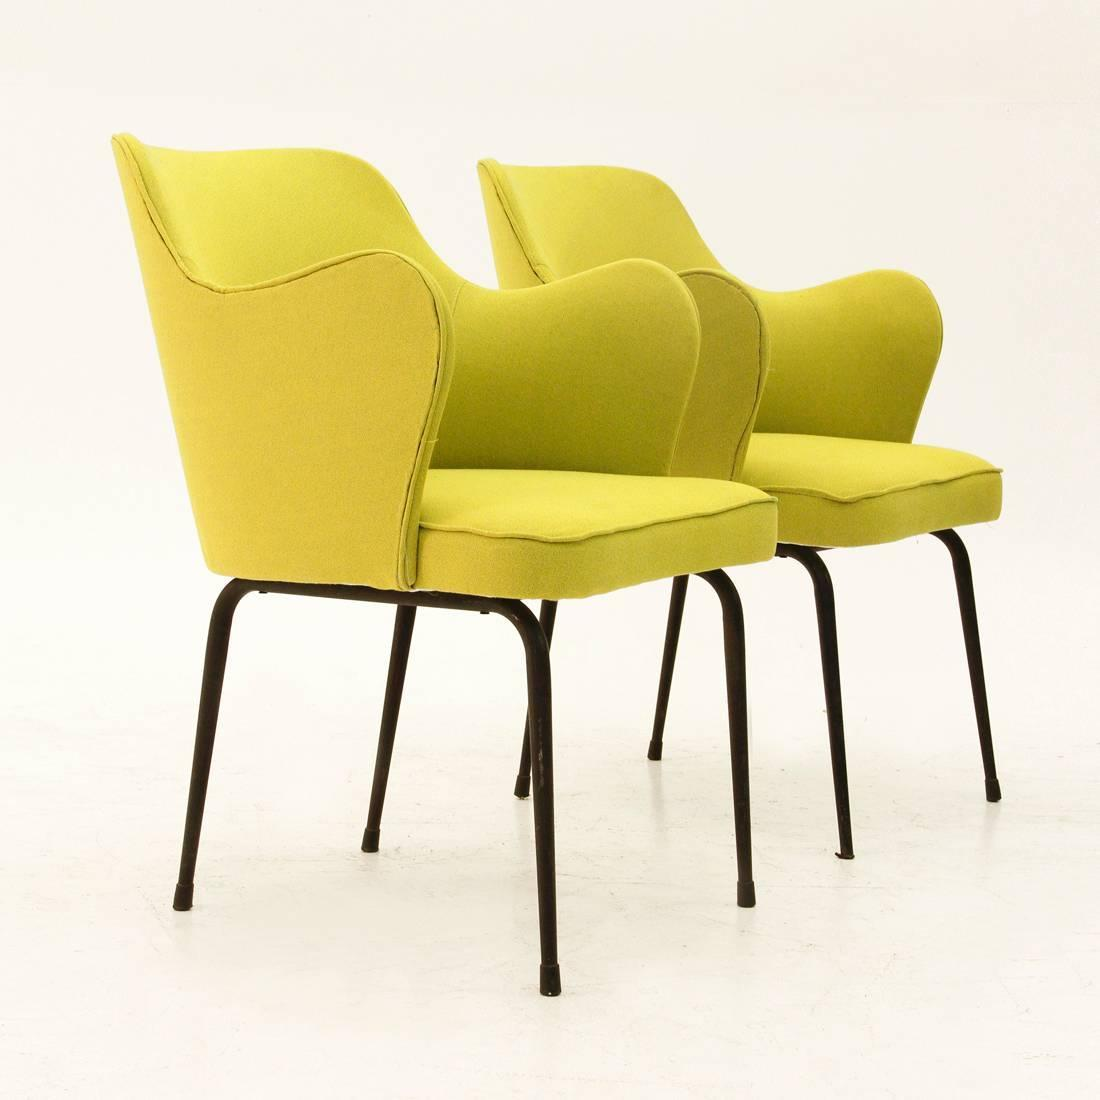 lime green chairs for sale with rollers italian armchairs 1950s set of two